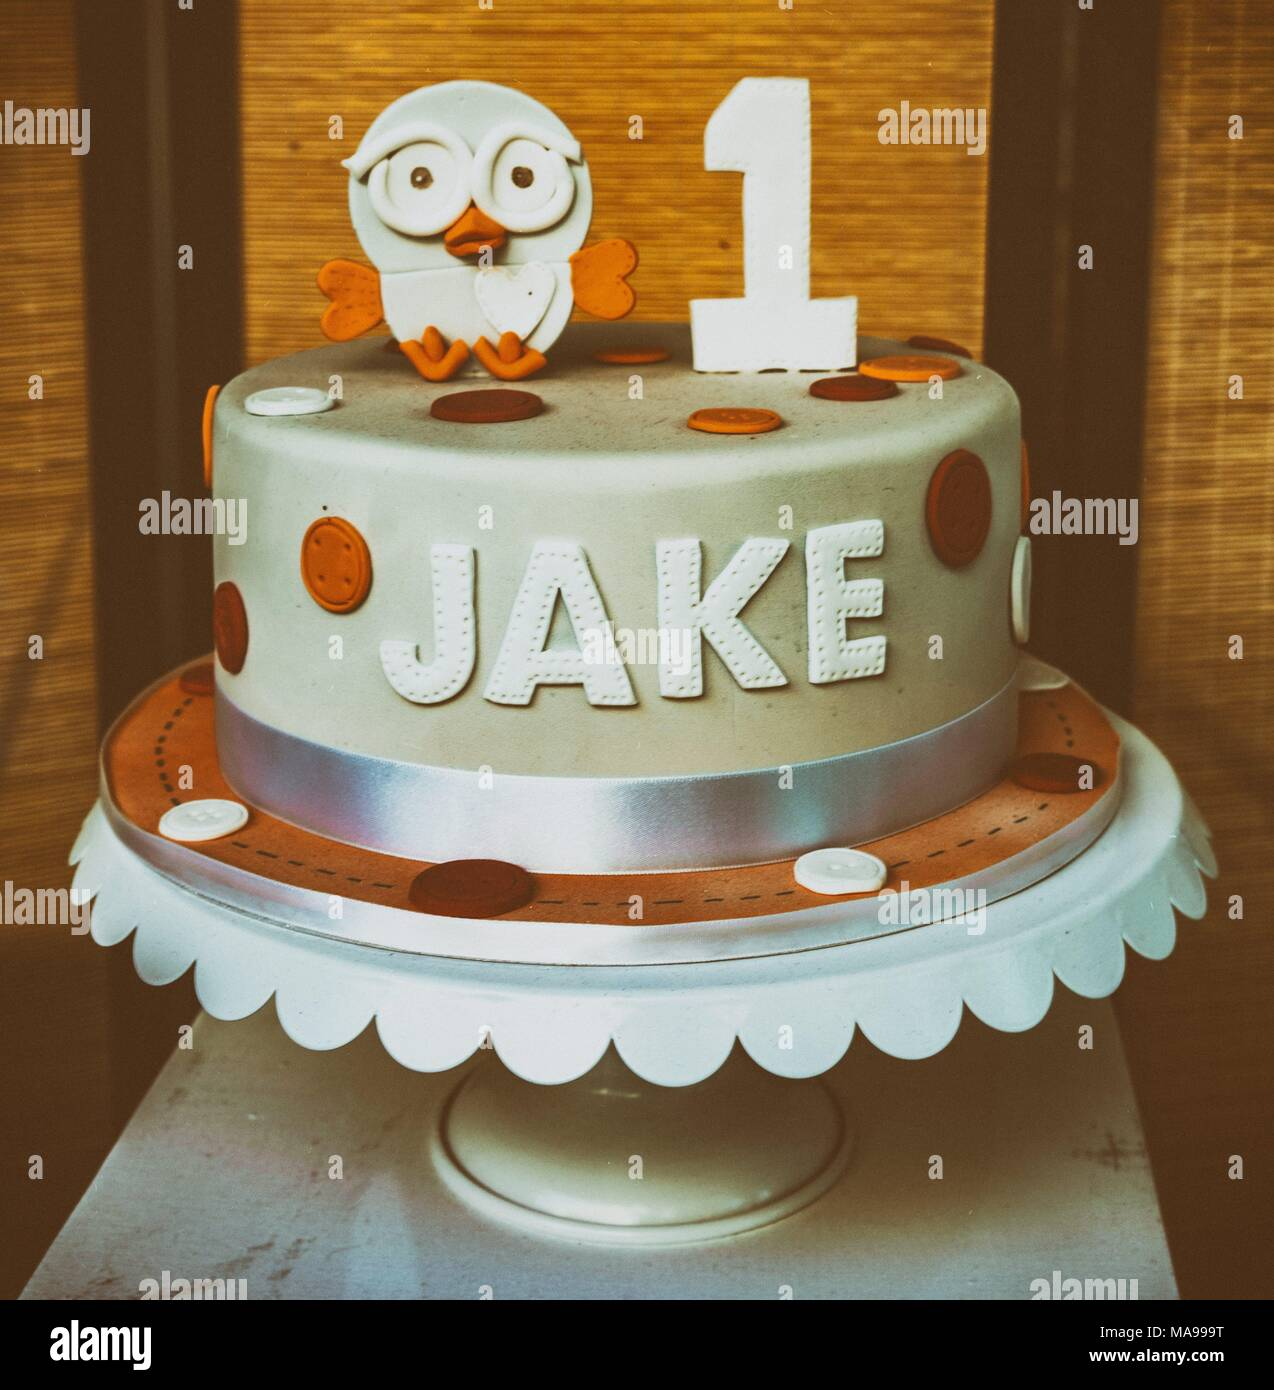 Superb Birthday Cake With The Name Jake Stock Photo 178455140 Alamy Funny Birthday Cards Online Alyptdamsfinfo